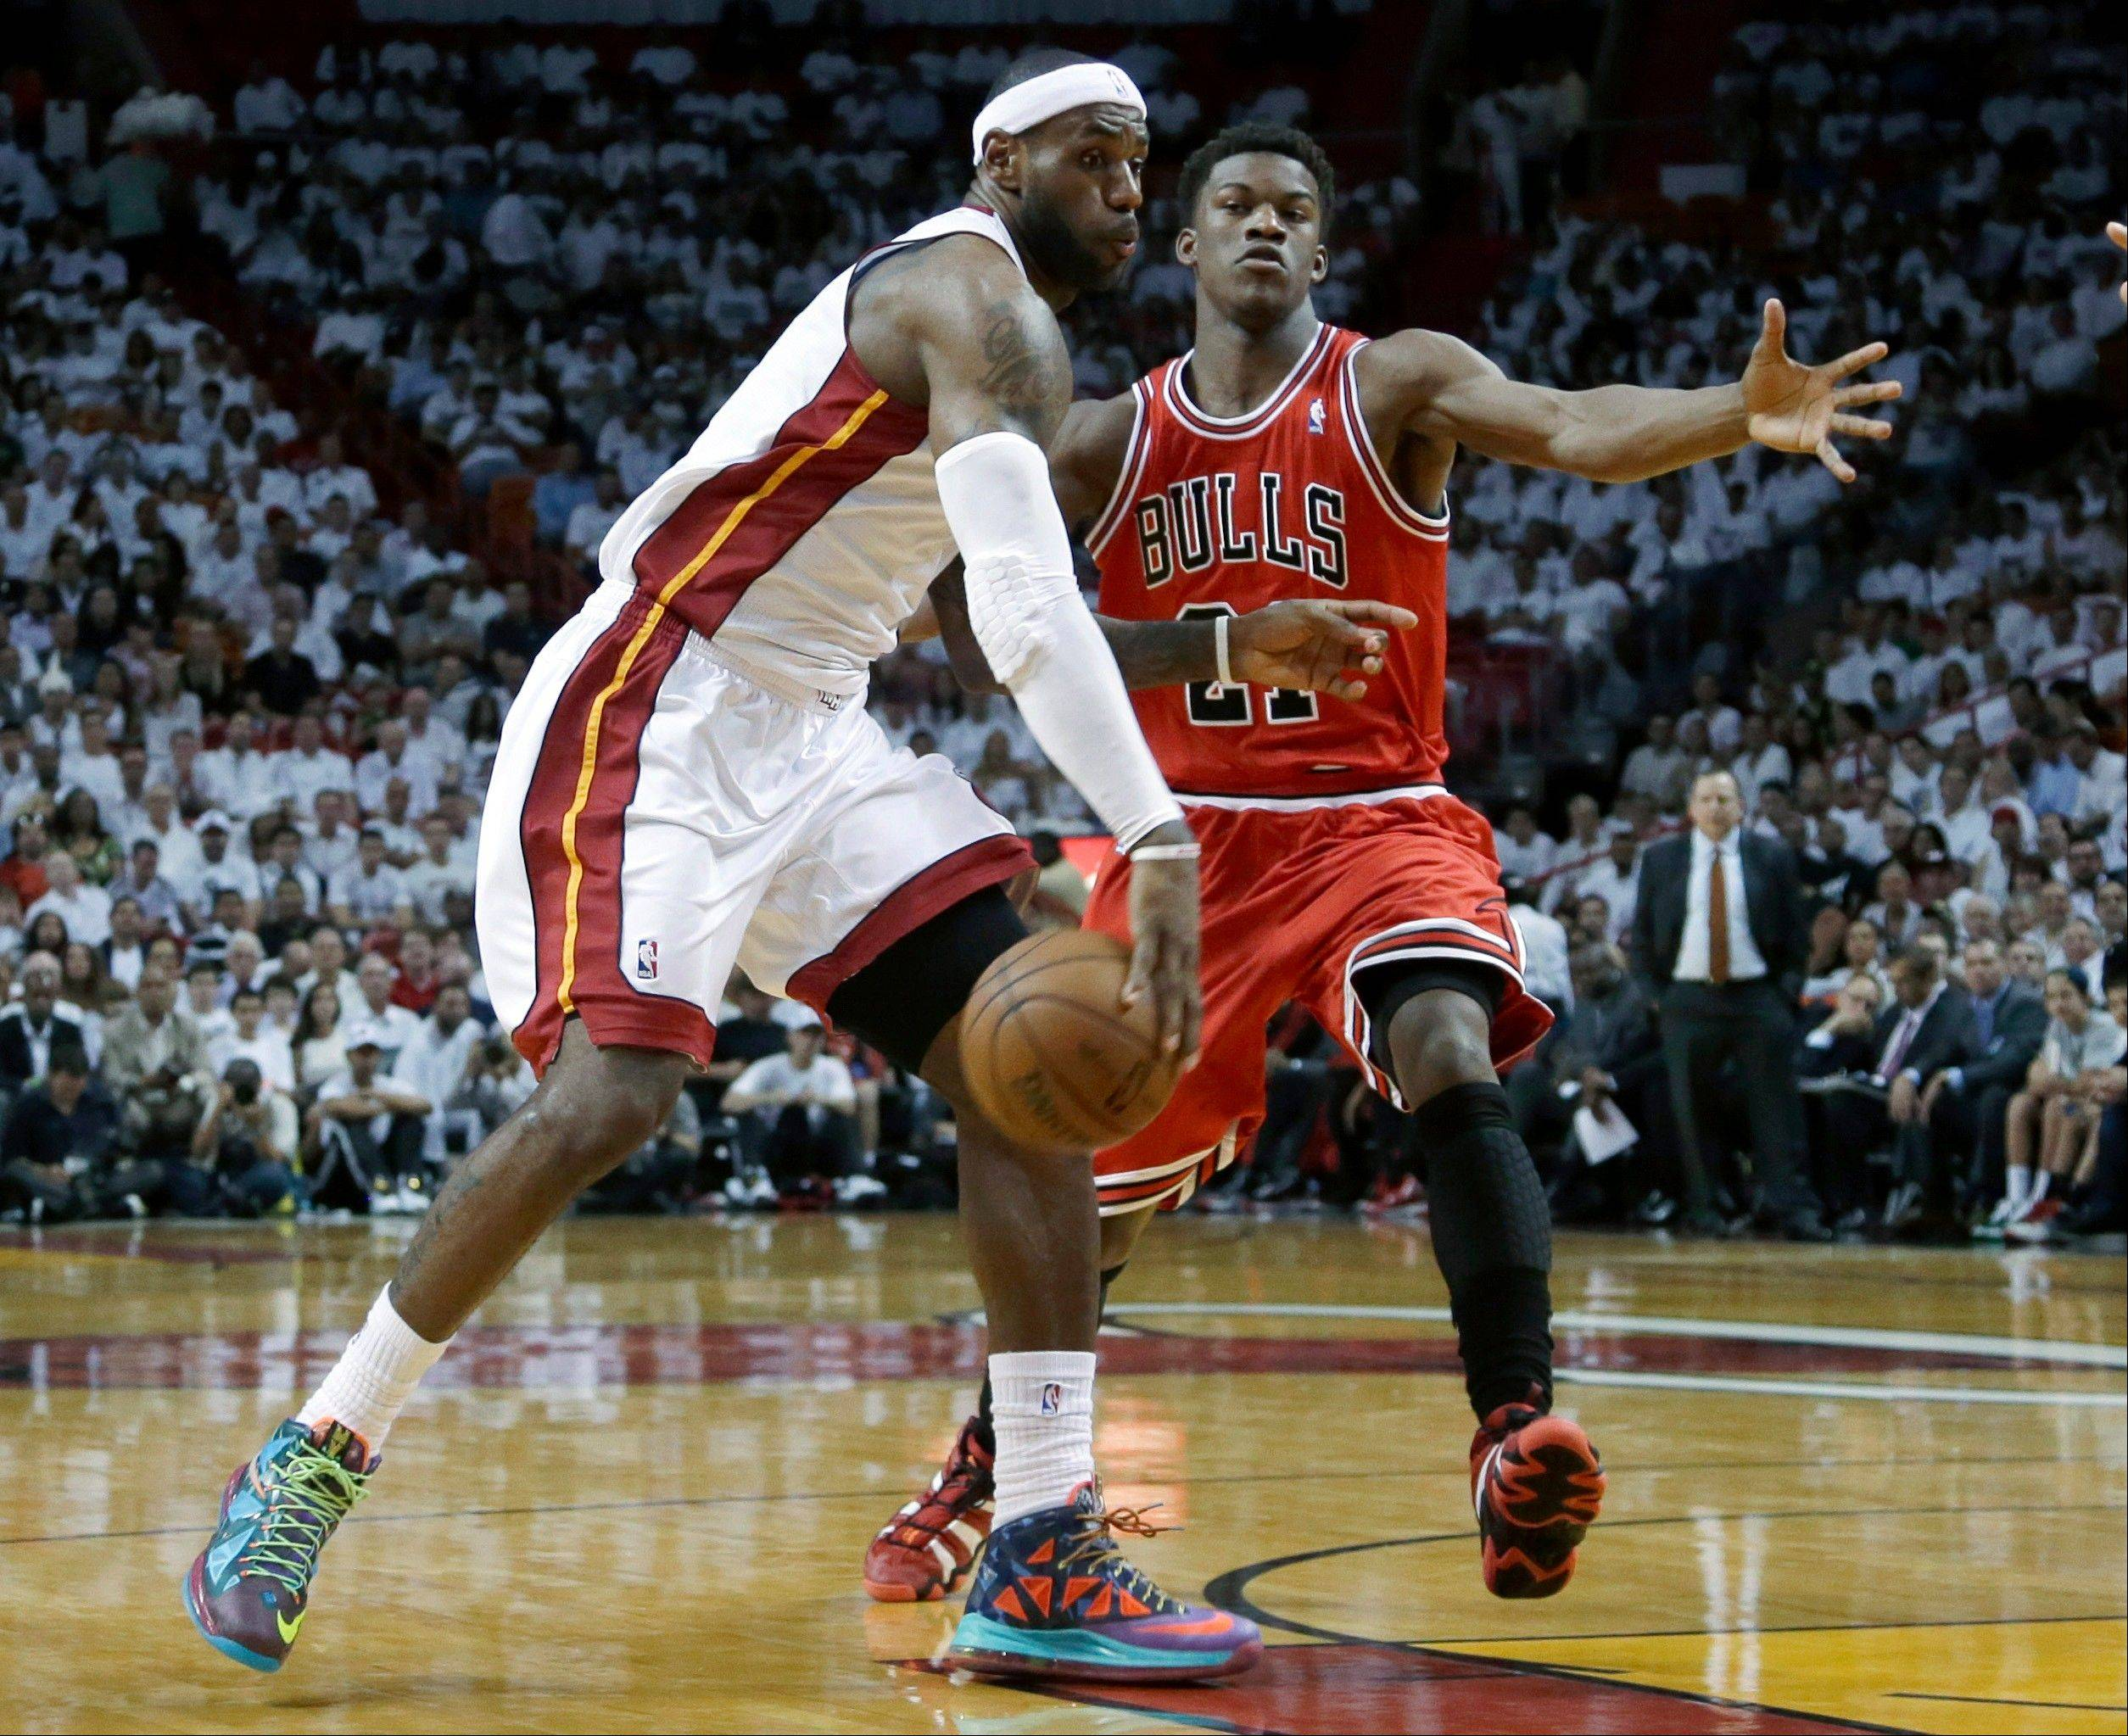 Miami Heat forward LeBron James, left, passes around Chicago Bulls forward Jimmy Butler during the first half of Game 1 of the NBA basketball playoff series in the Eastern Conference semifinals, Monday, May 6, 2013 in Miami.